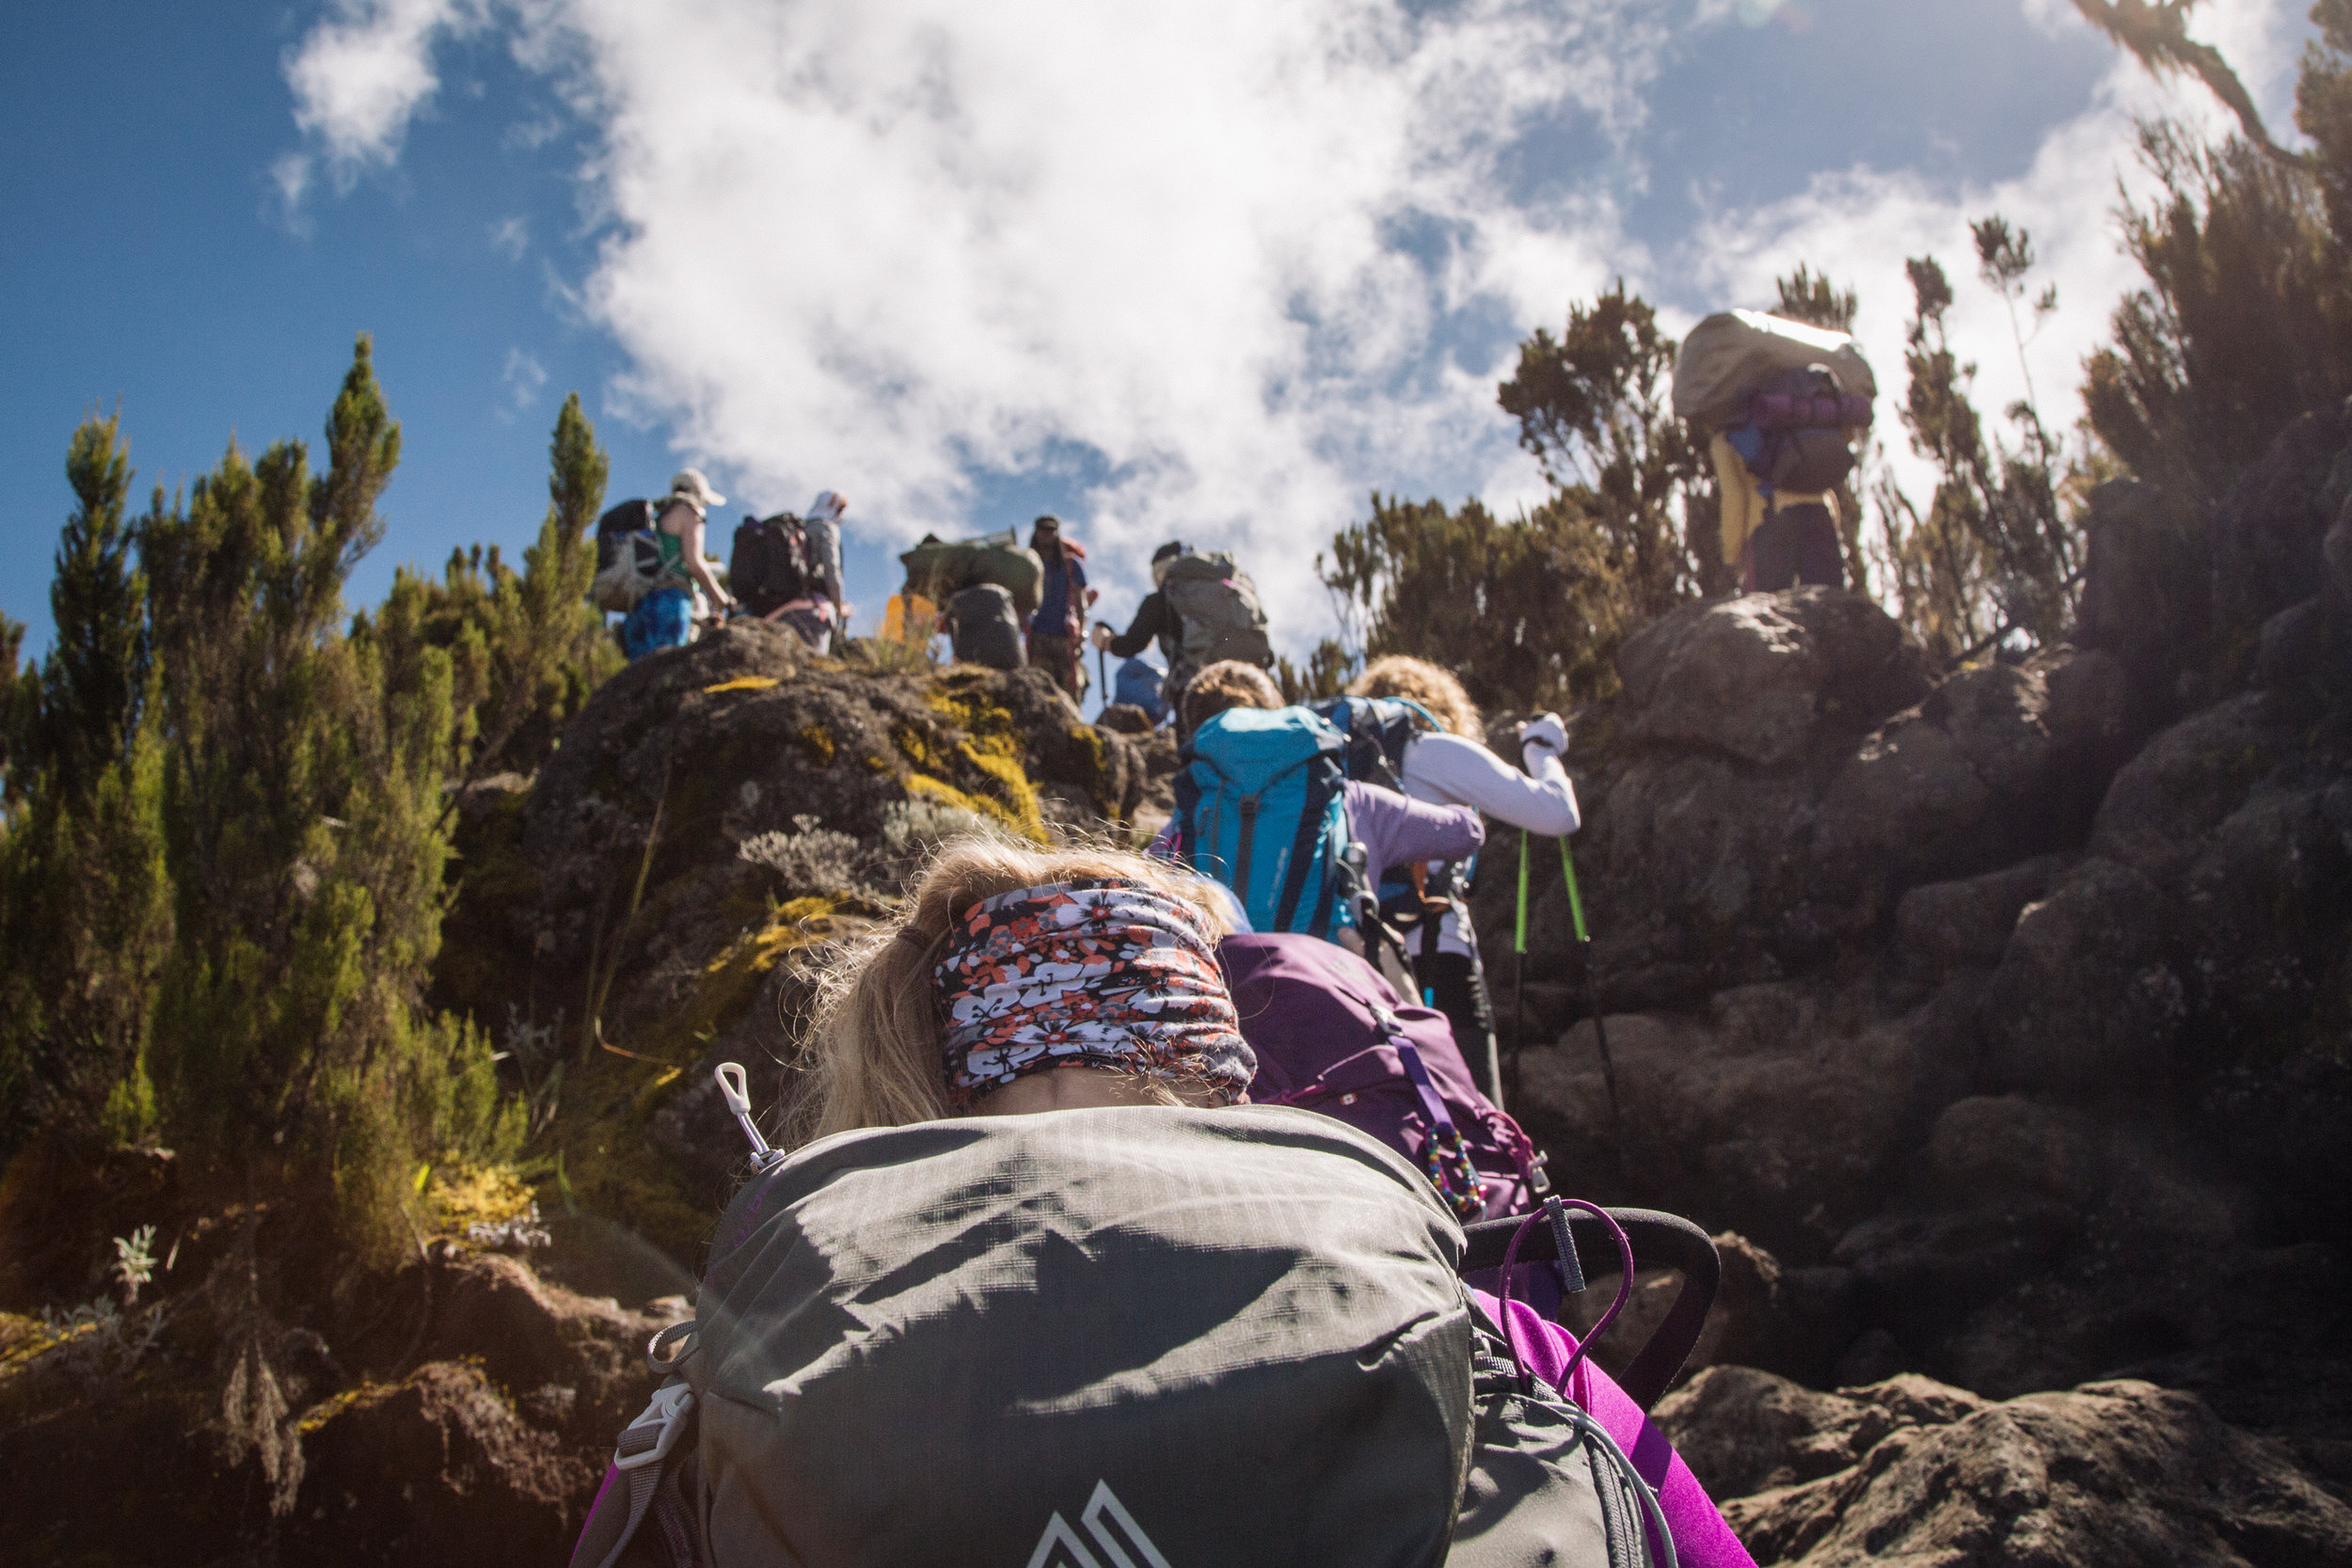 DAY 3:POLE, POLE - MACHAME CAMP to SHIRA CAMPElevation: 3,000 - 3,840 mHiking Time: 4 - 6 hoursDistance: 5 km